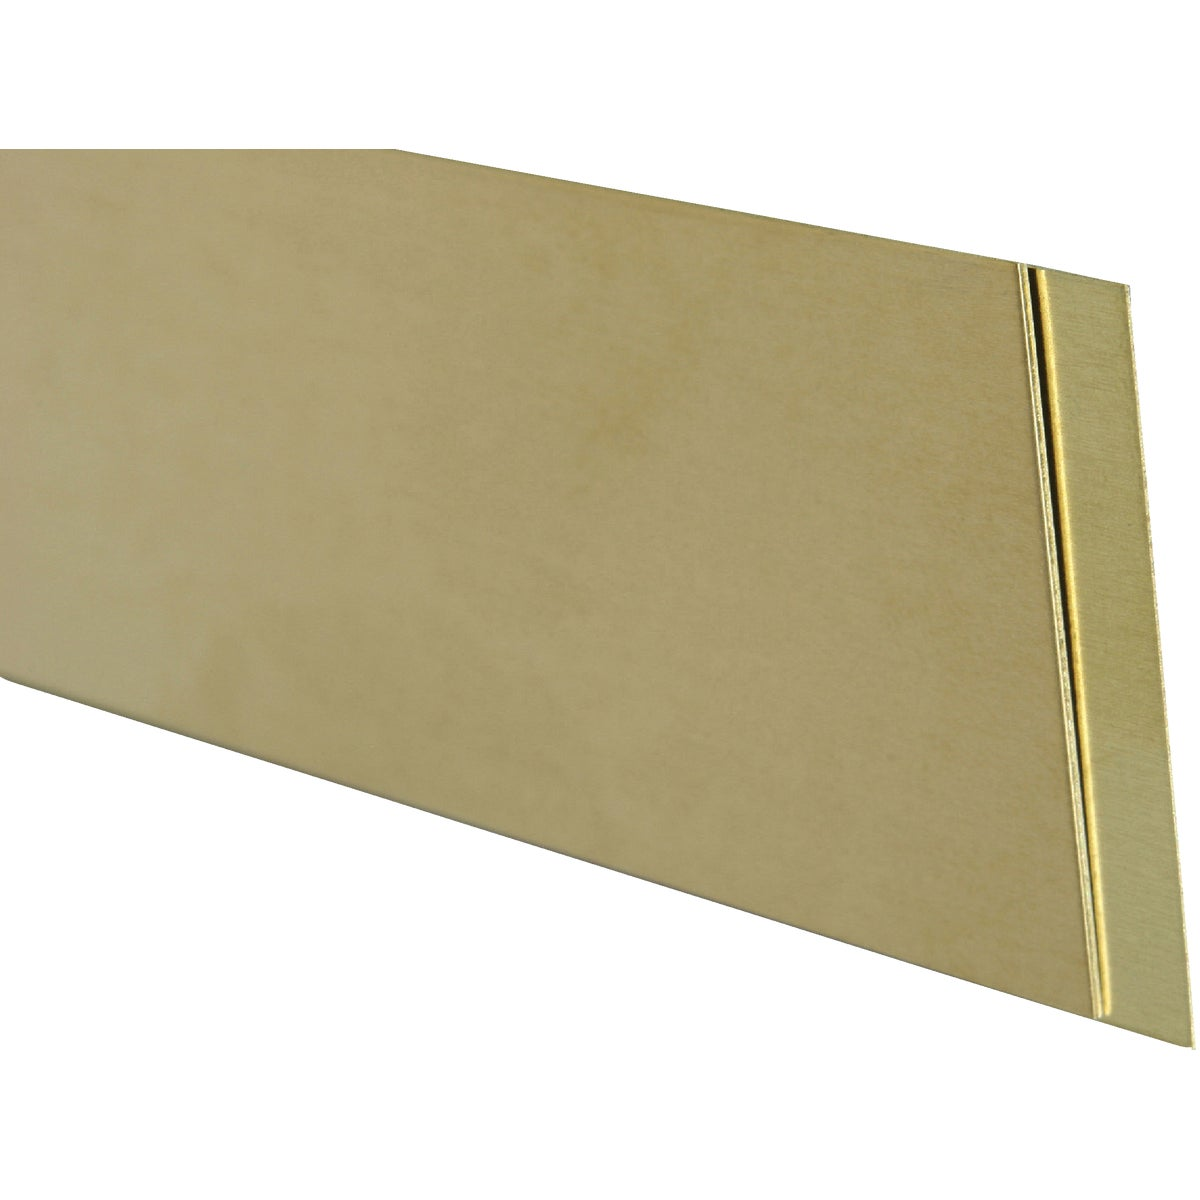 .016X3/4X12 BRASS STRIP - 8233 by K&s Precision Metals